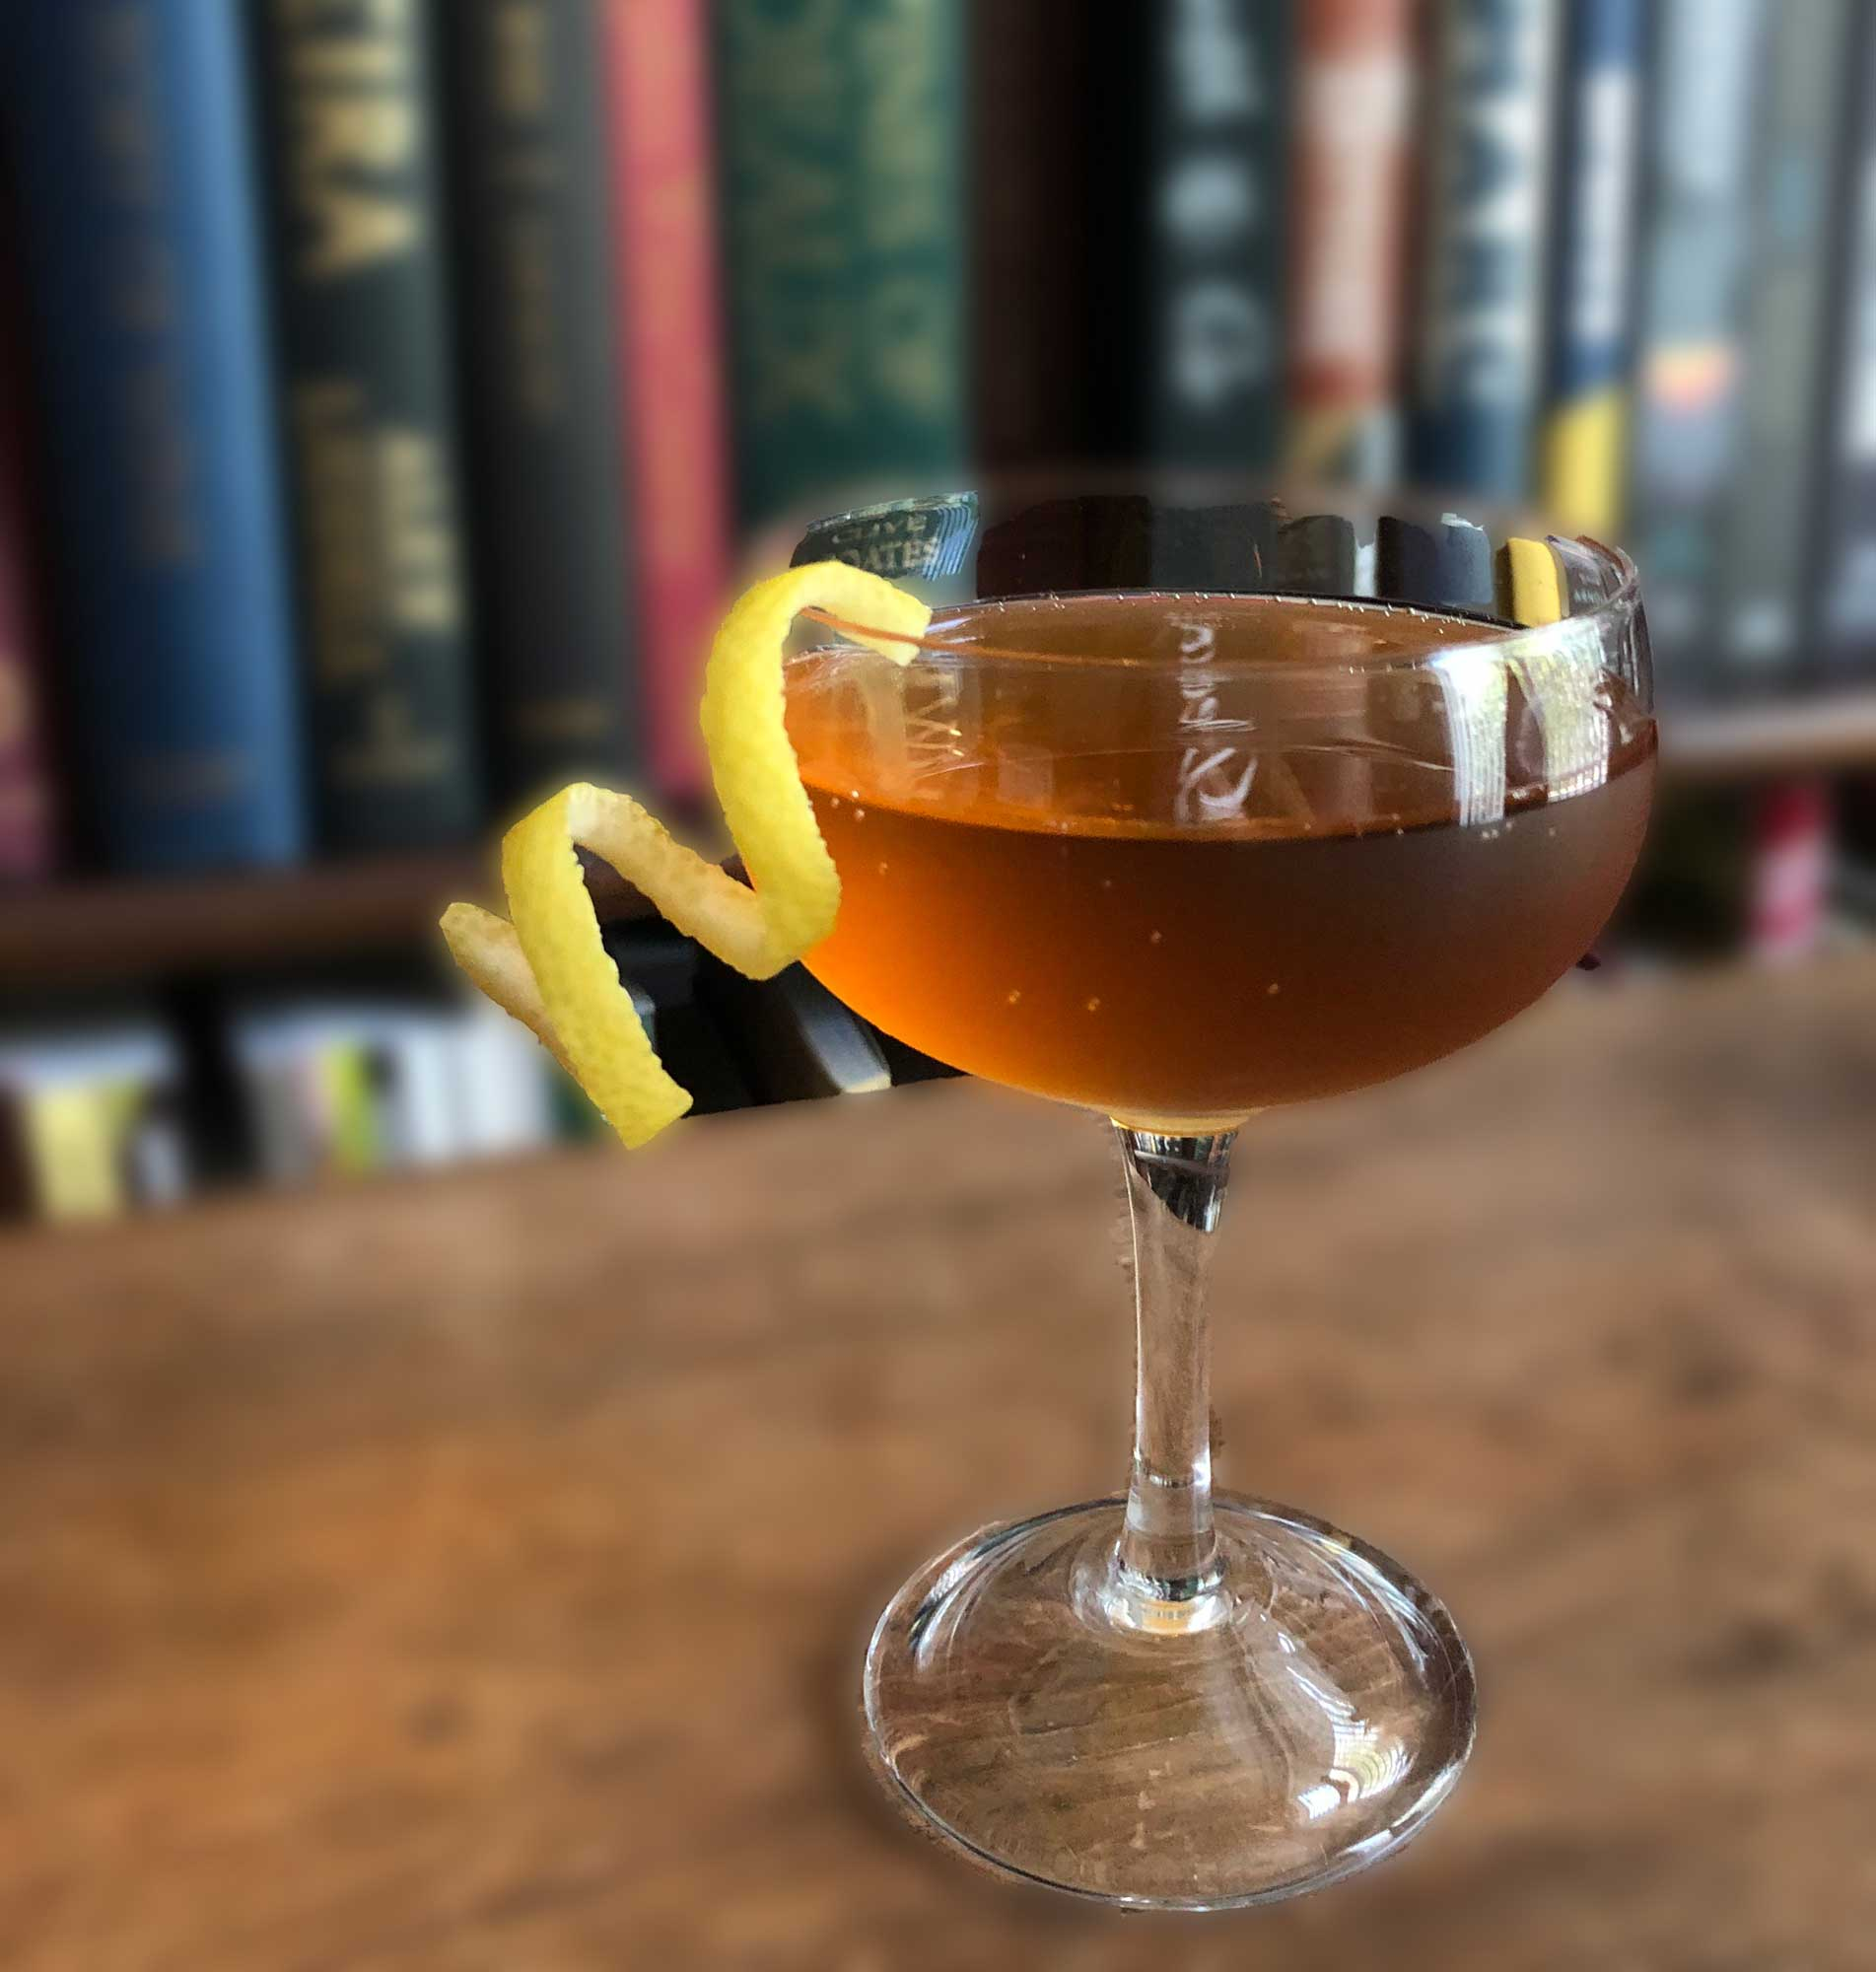 An example of the Familia Cocktail, the mixed drink (cocktail) featuring Cocchi Asti DOCG or sparkling wine, and Cardamaro Vino Amaro; photo by Lee Edwards